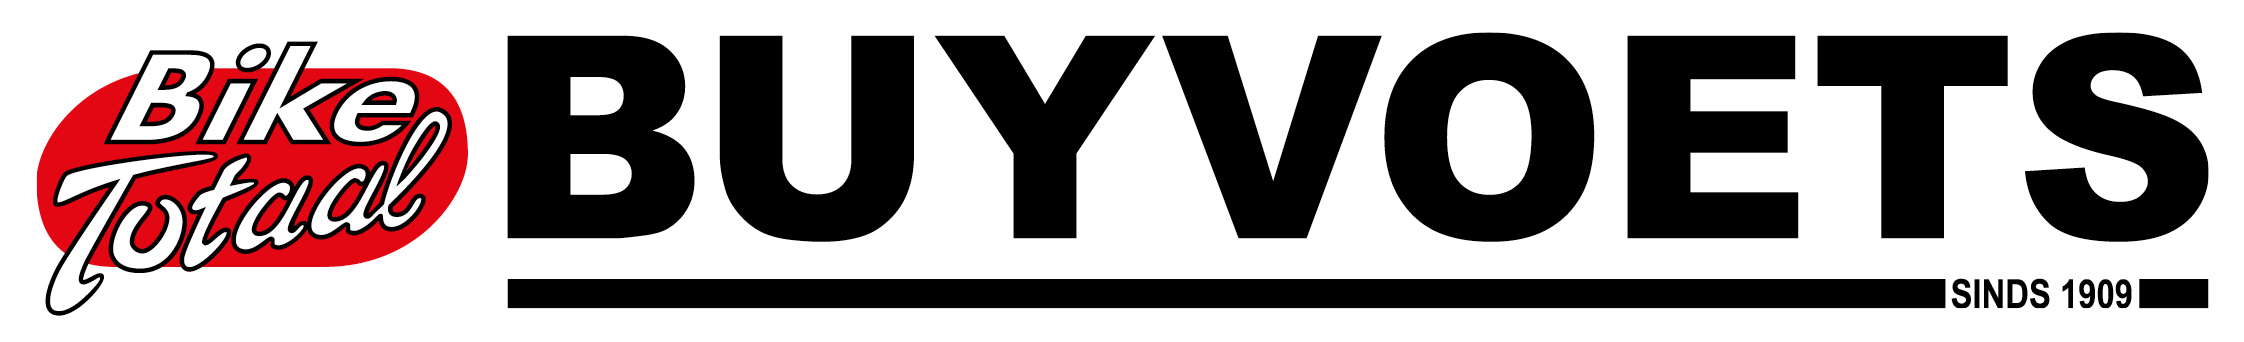 BT Buyvoets logo breed